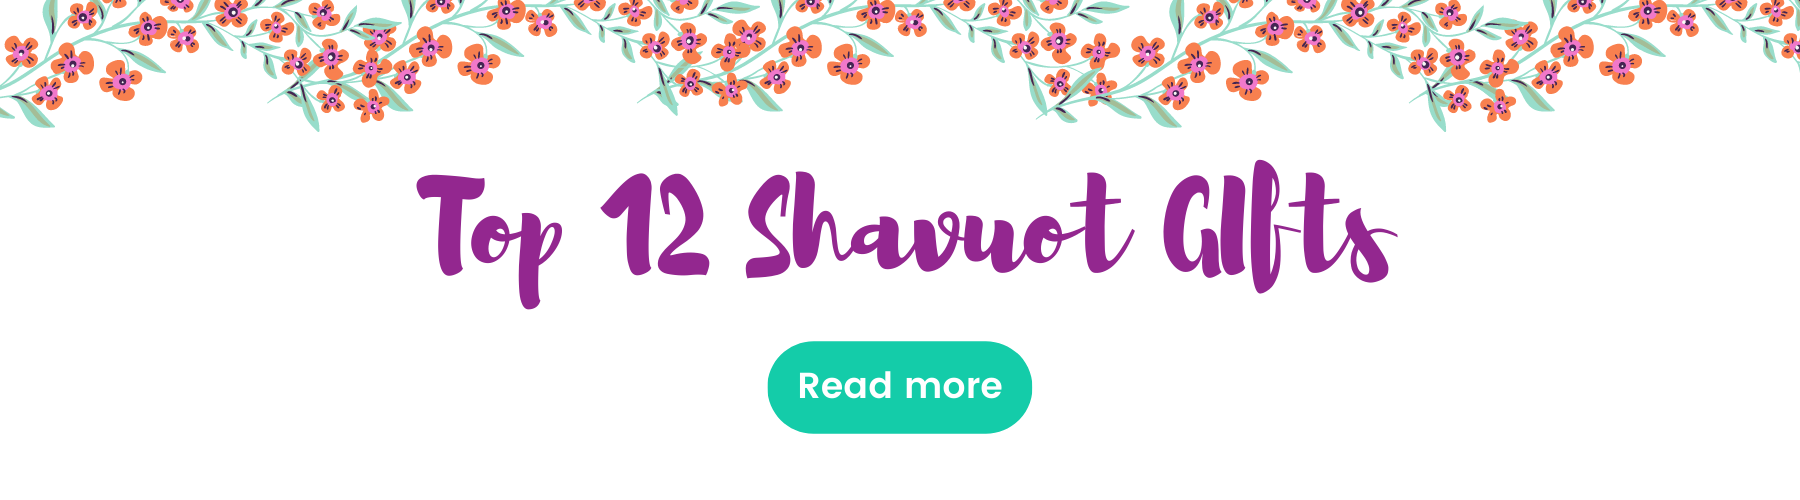 shavuot gifts top